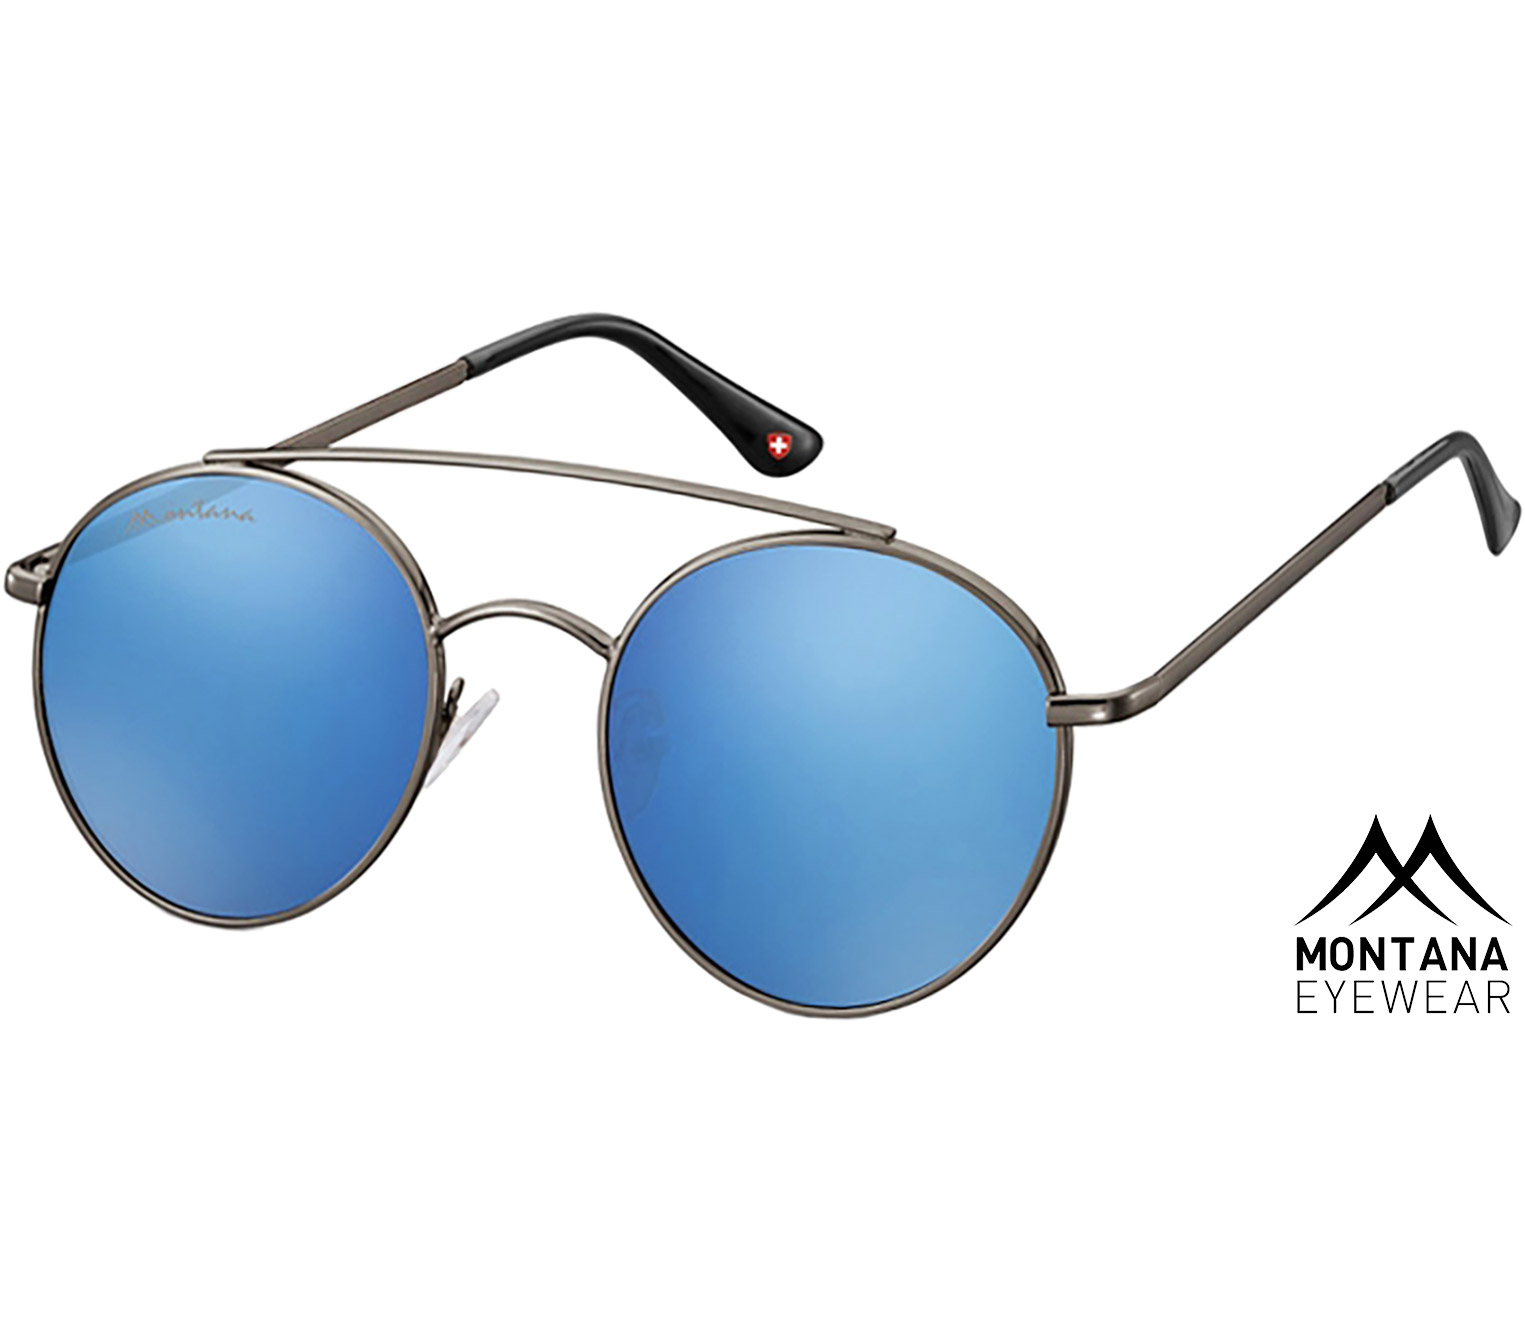 Main Image (Angle) - Brandon (Gunmetal) Retro Sunglasses